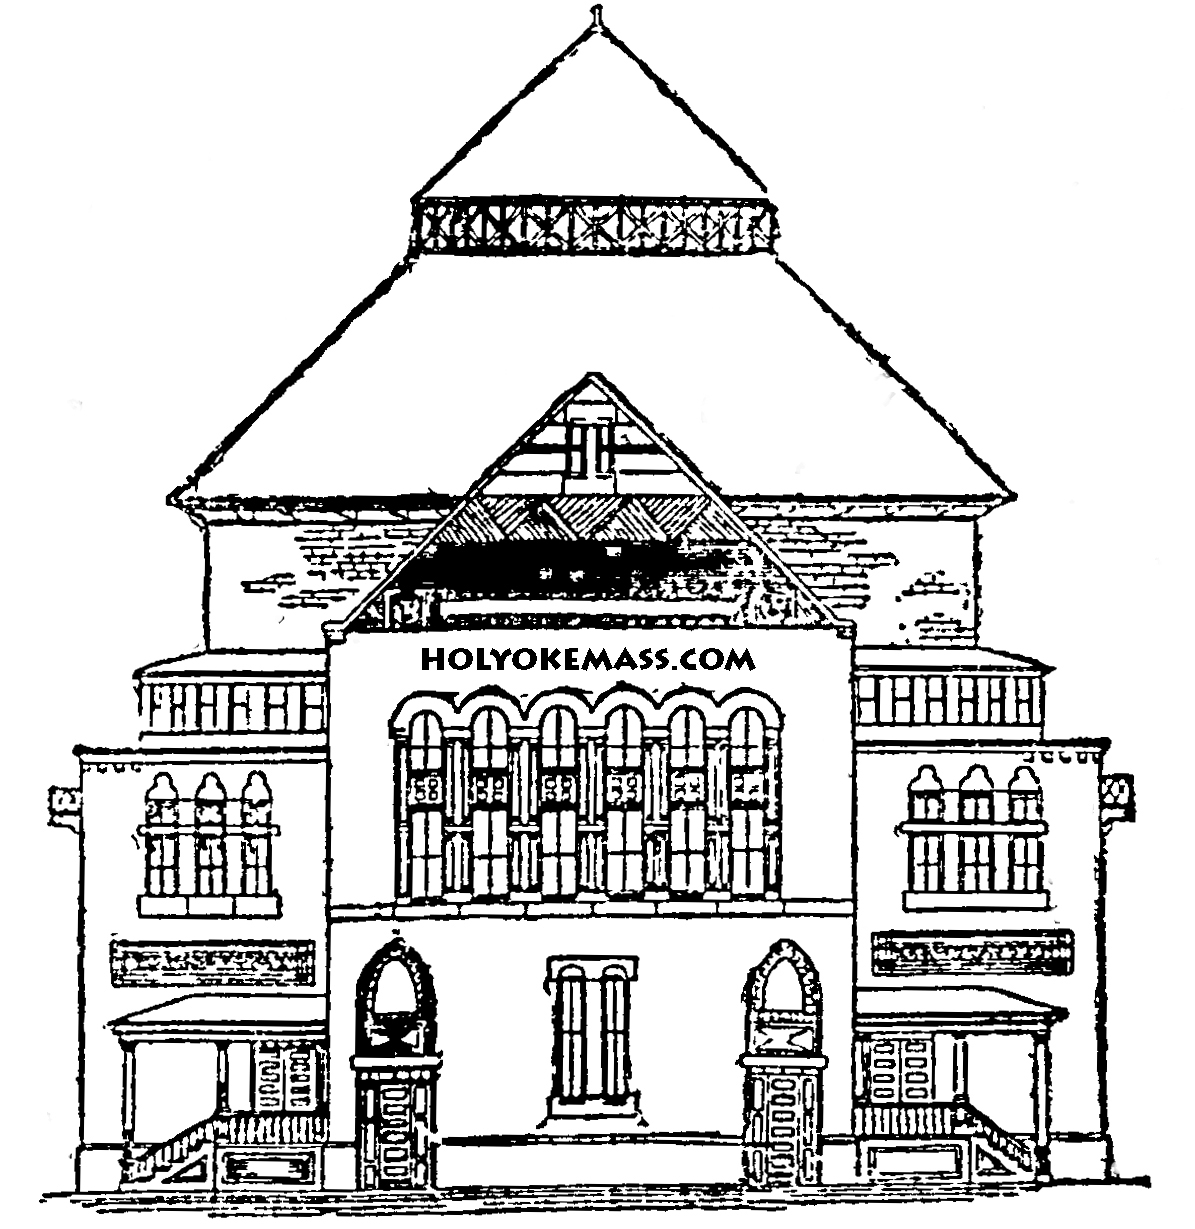 school house coloring pages - Free Coling